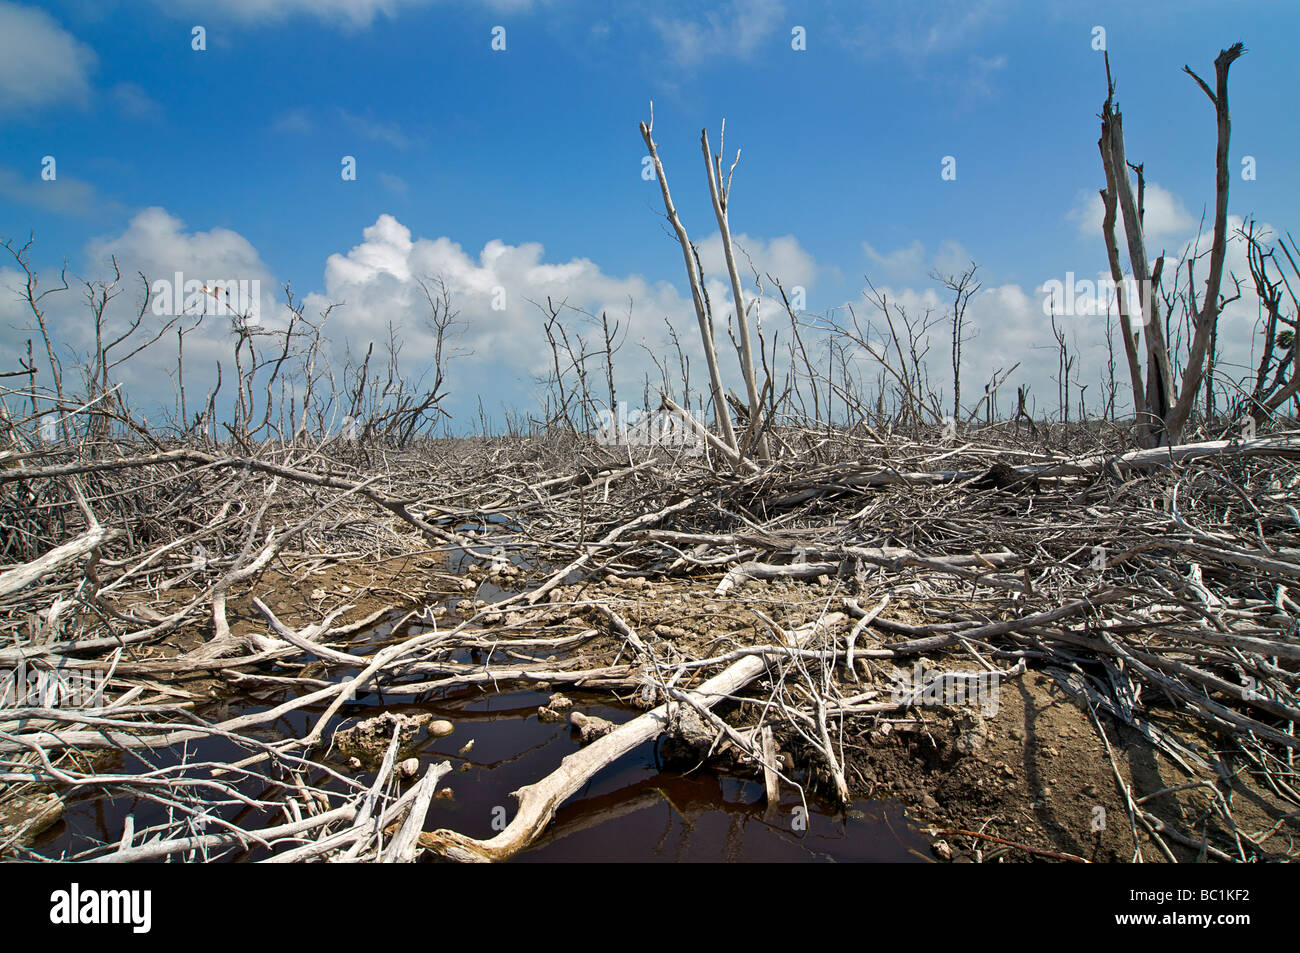 Environmental damage, likely caused by an elevated water table and increased salinity, now unable to support vegetation - Stock Image